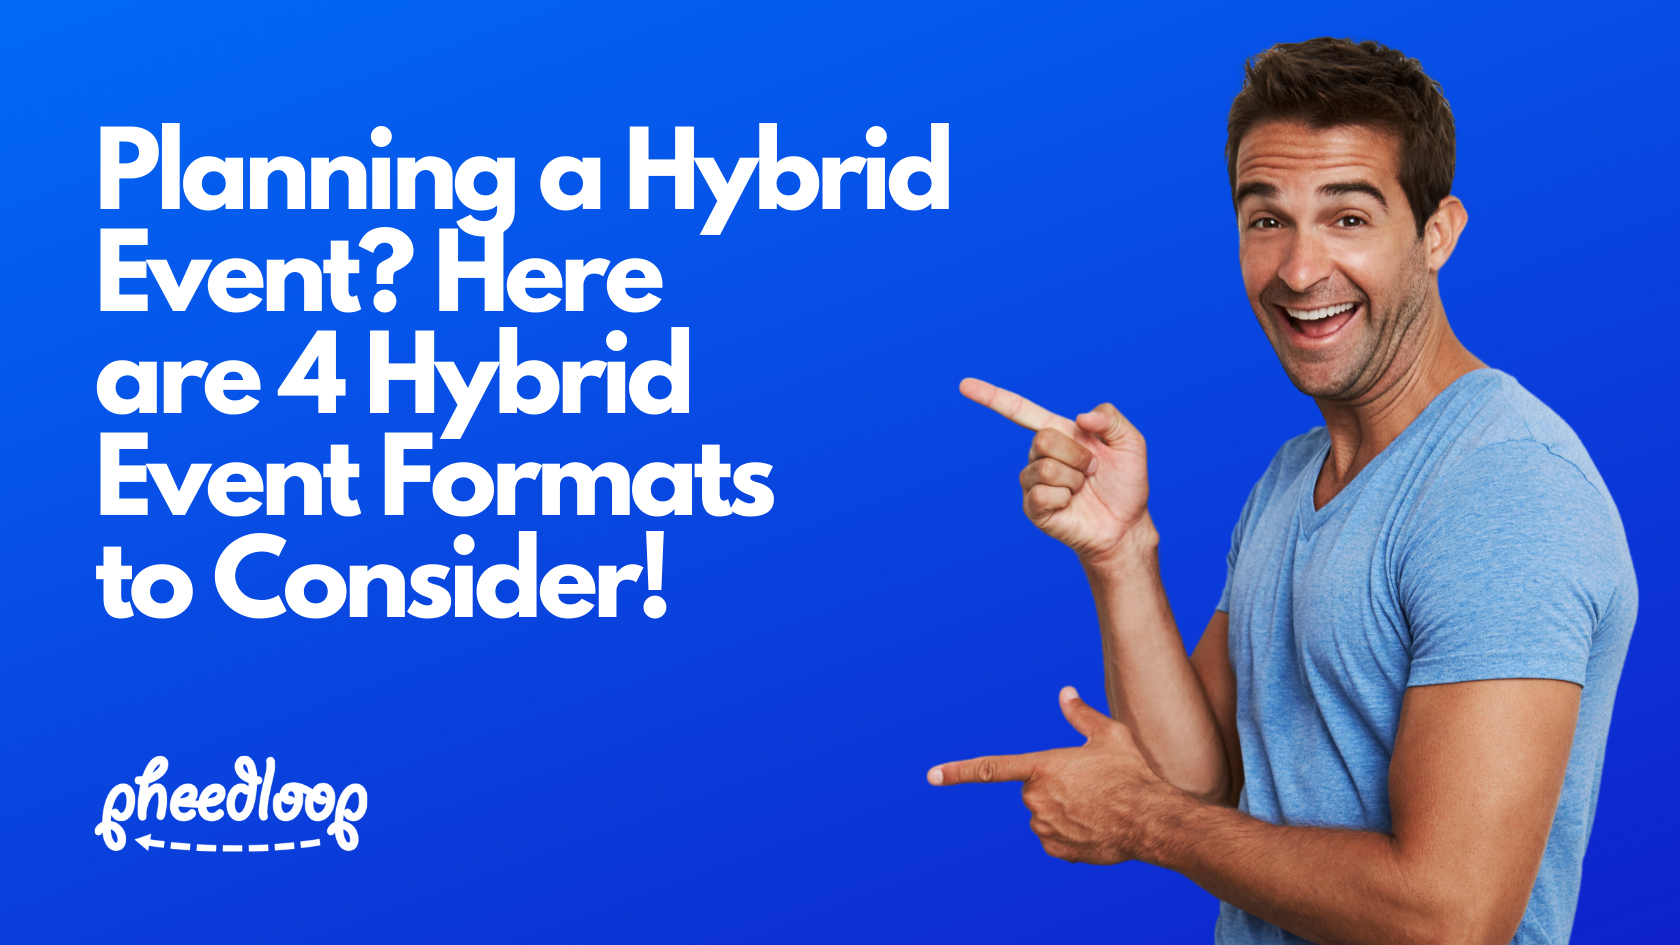 Planning a Hybrid Event? Here are 4 Hybrid Event Formats and Ideas to Consider!